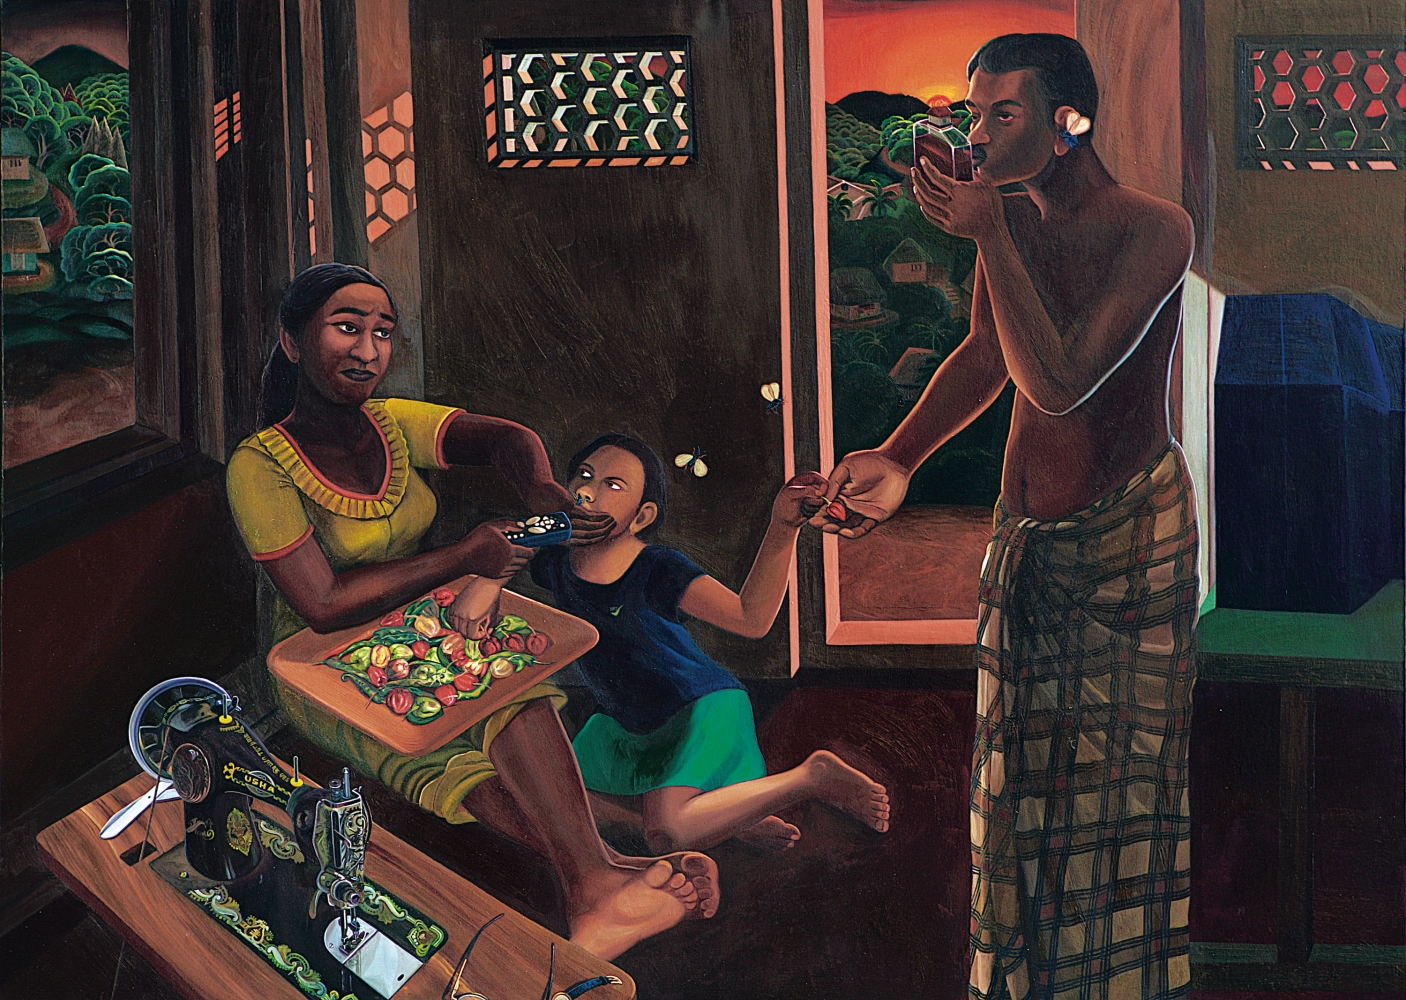 RATHEESH T., Family (Hill 2), 2006, oil on canvas, 153 x 215 cm / 60 x 84.6 in